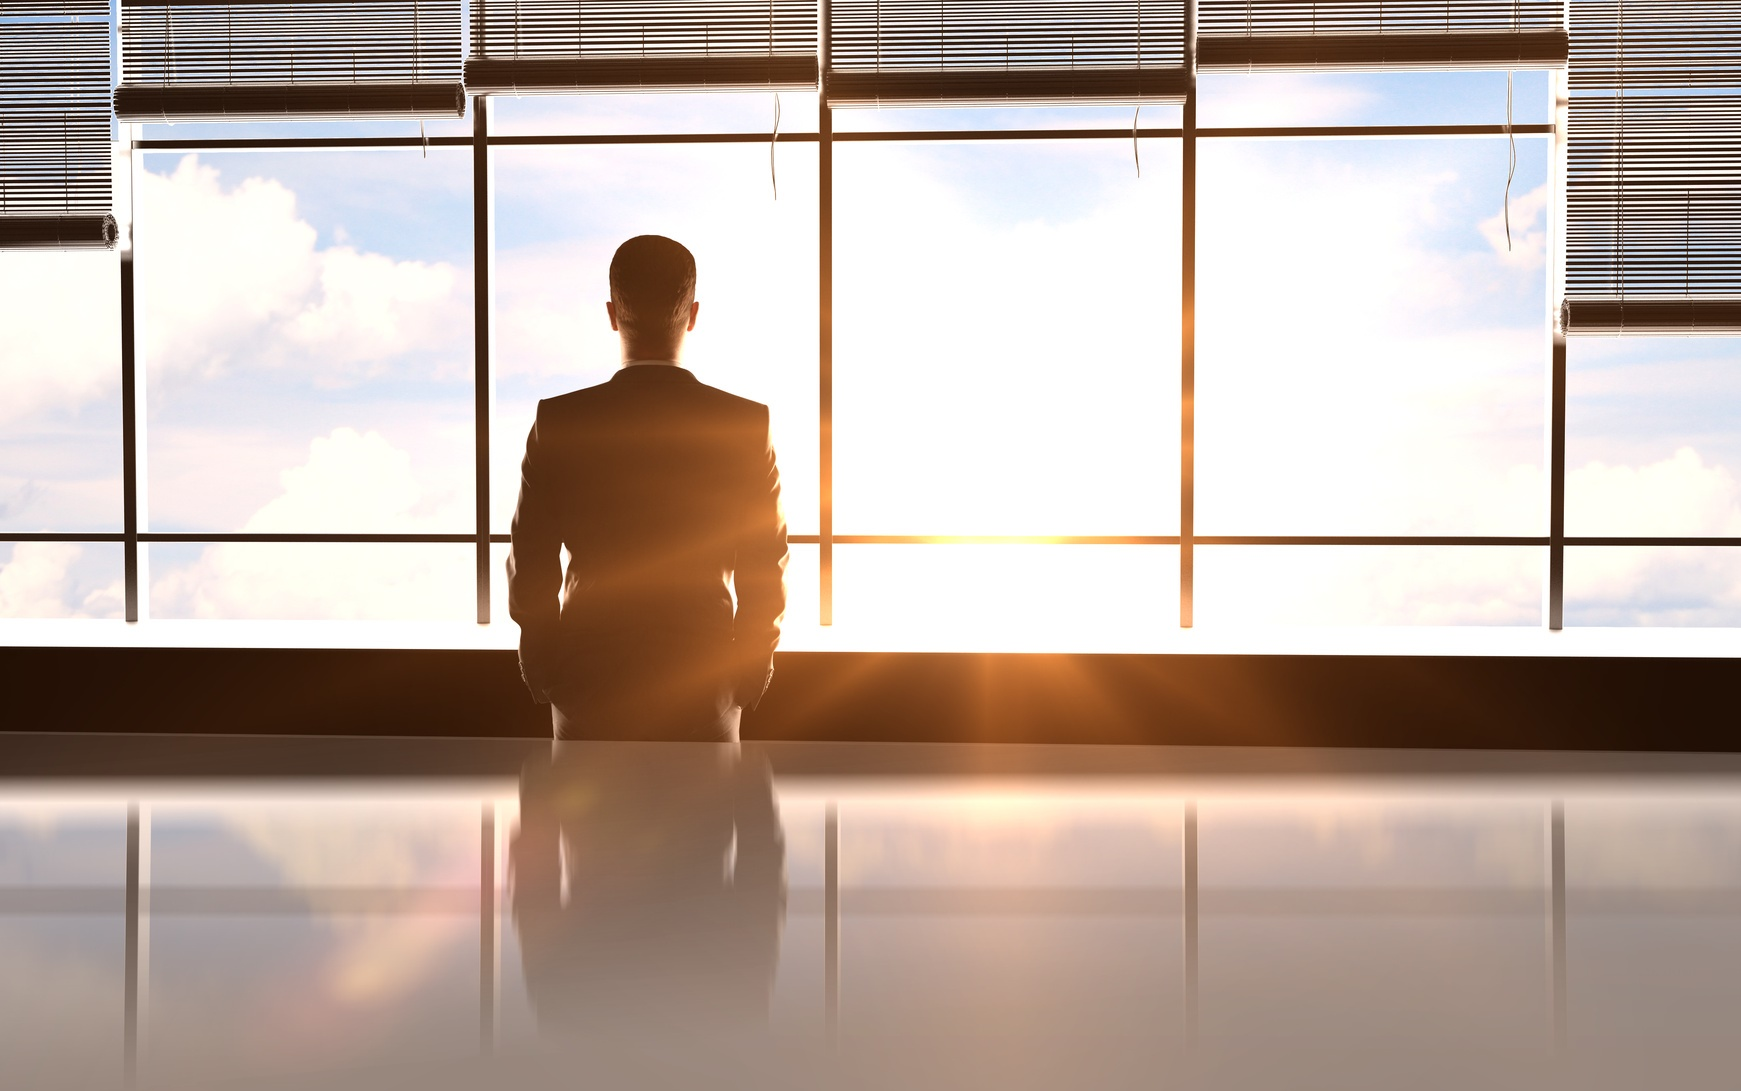 MAIN TRAITS AND QUALITIES OF SUCCESSFUL MANAGER